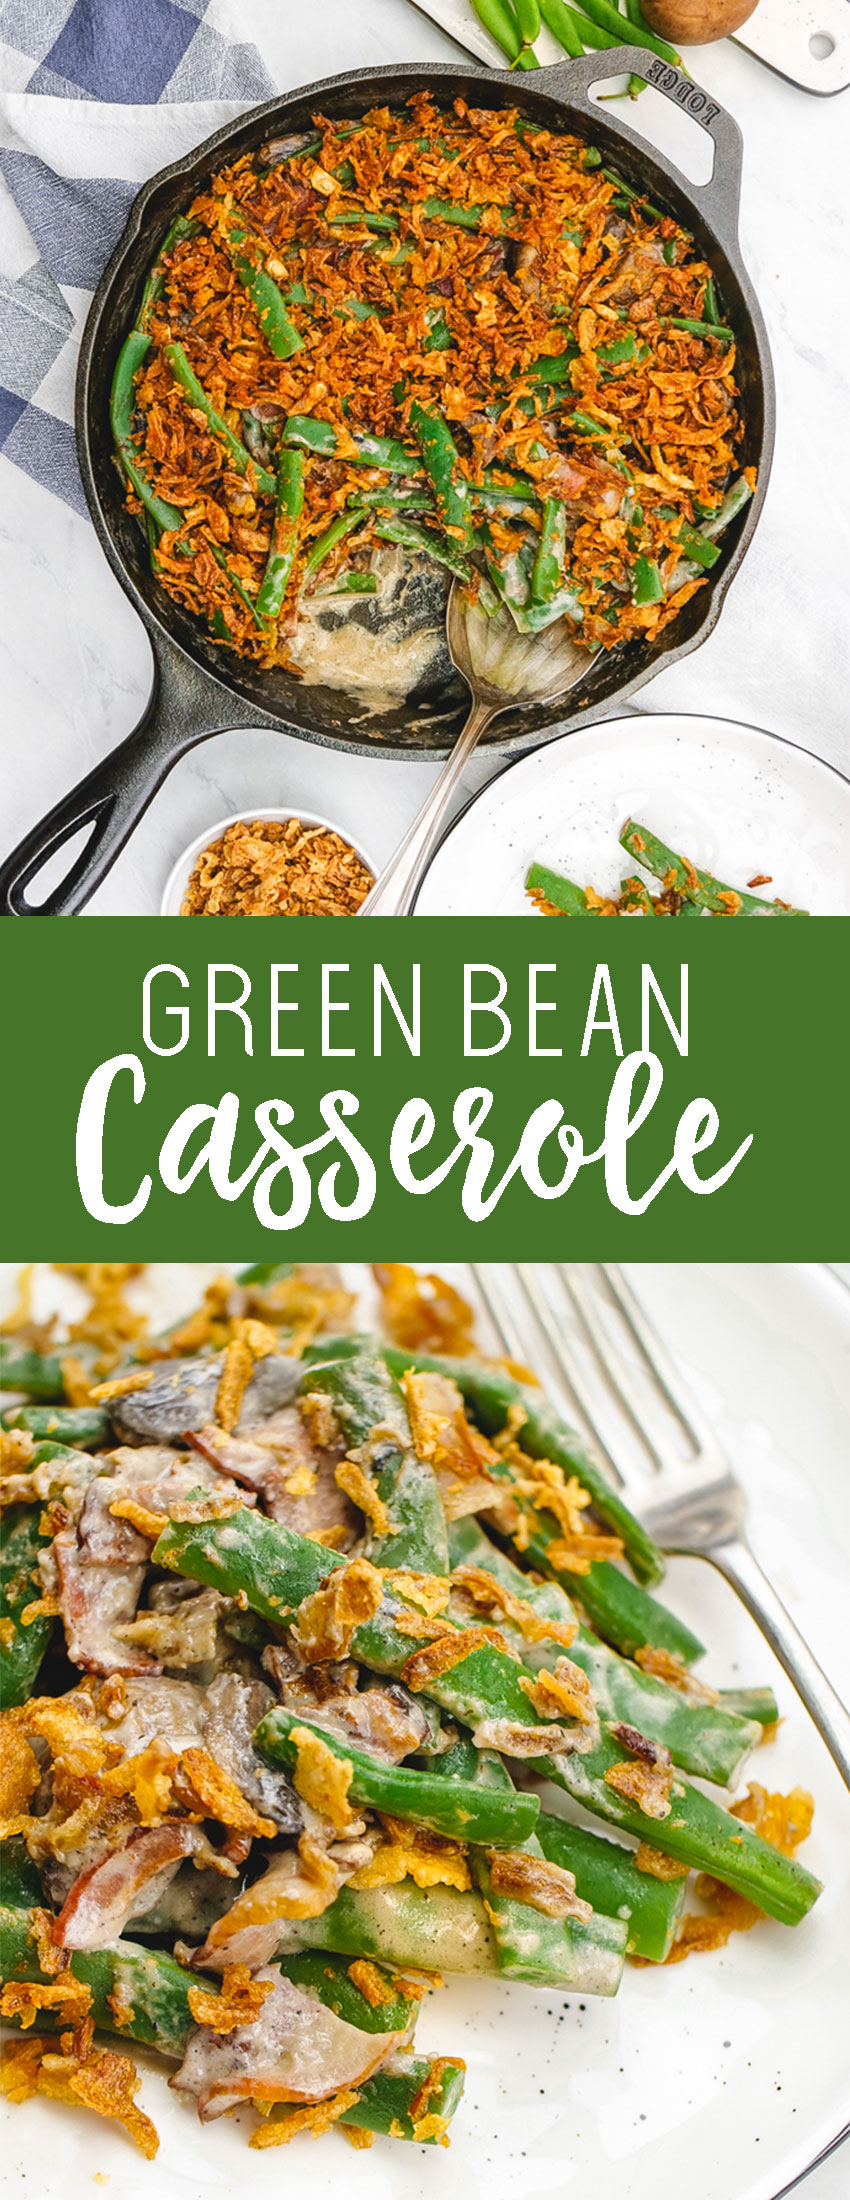 A rich, fresh made green bean casserole with no creamy of anything.